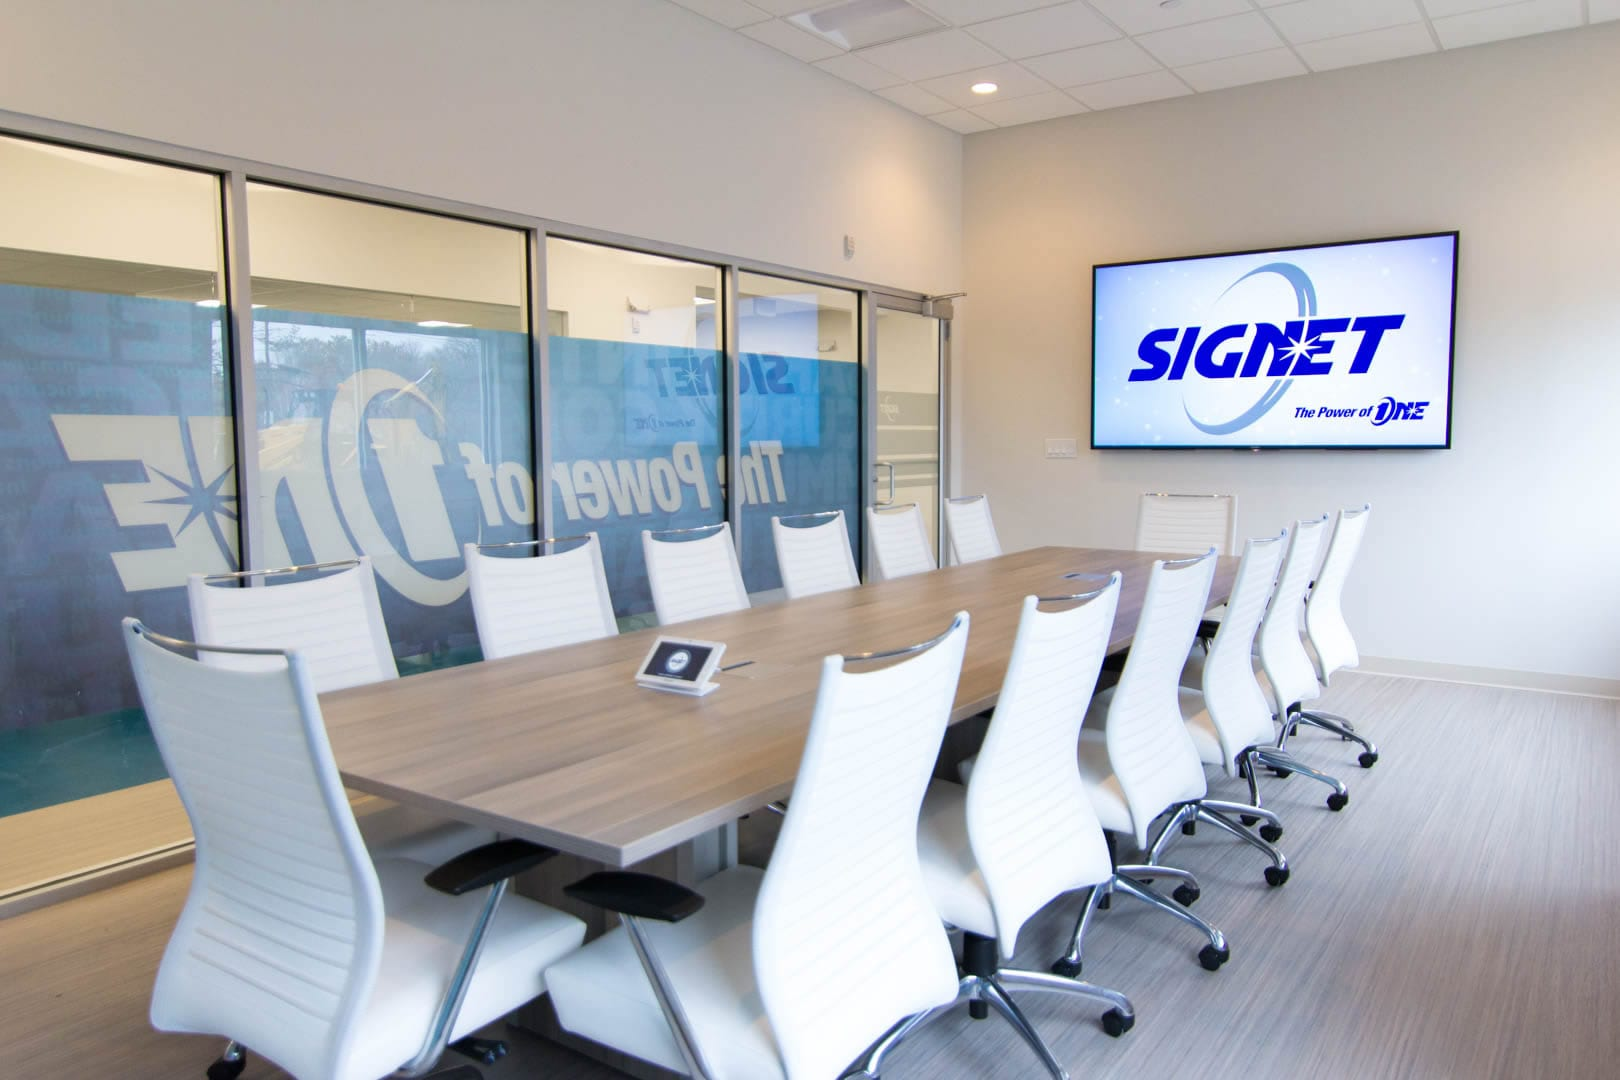 SIGNET New conference room